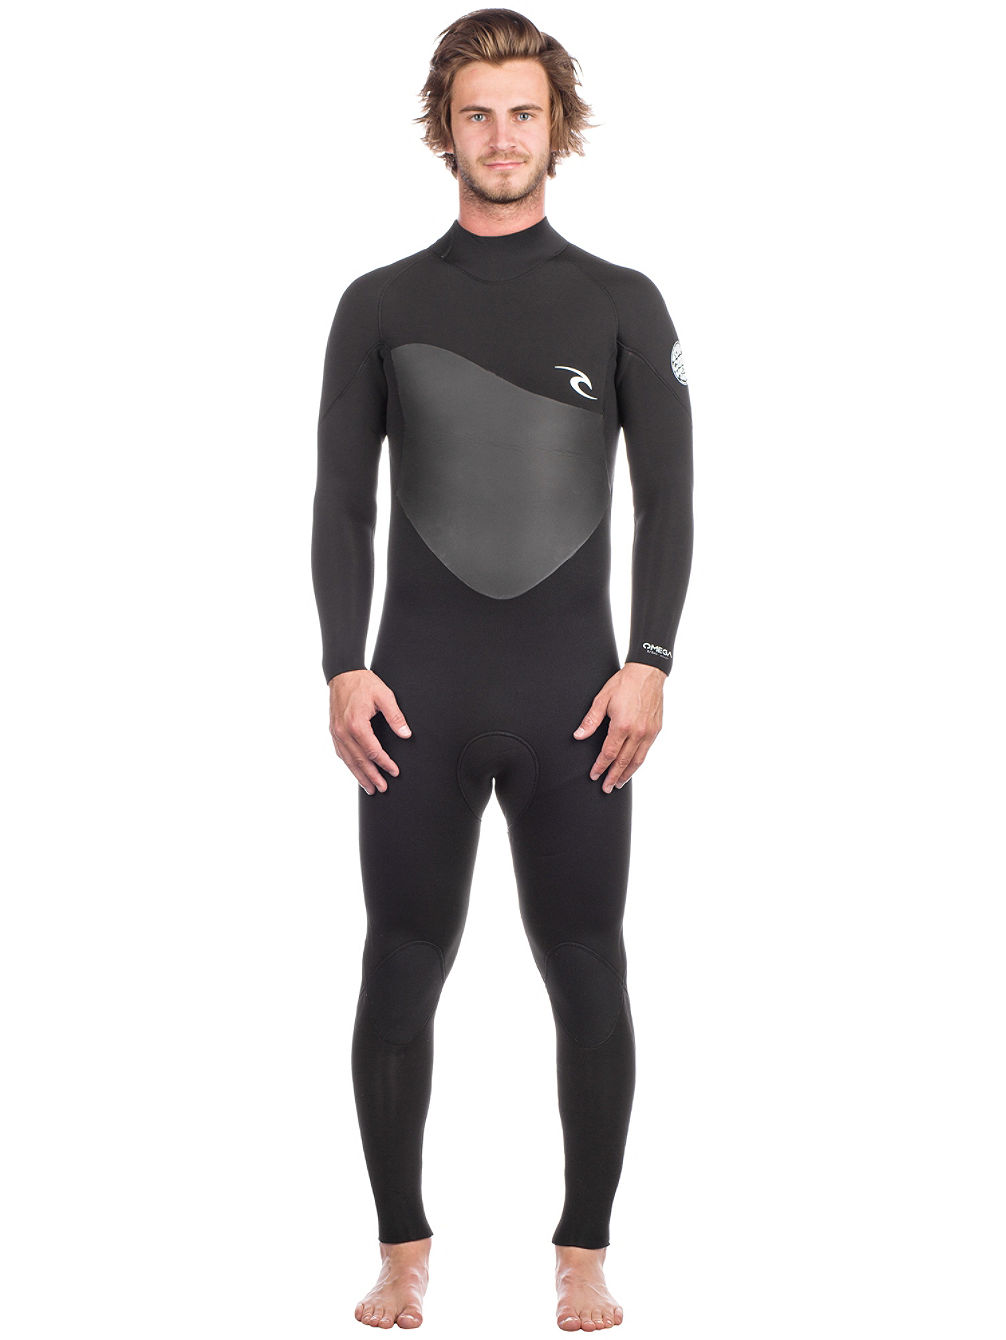 Omega 5/3 Gb Back Zip Wetsuit